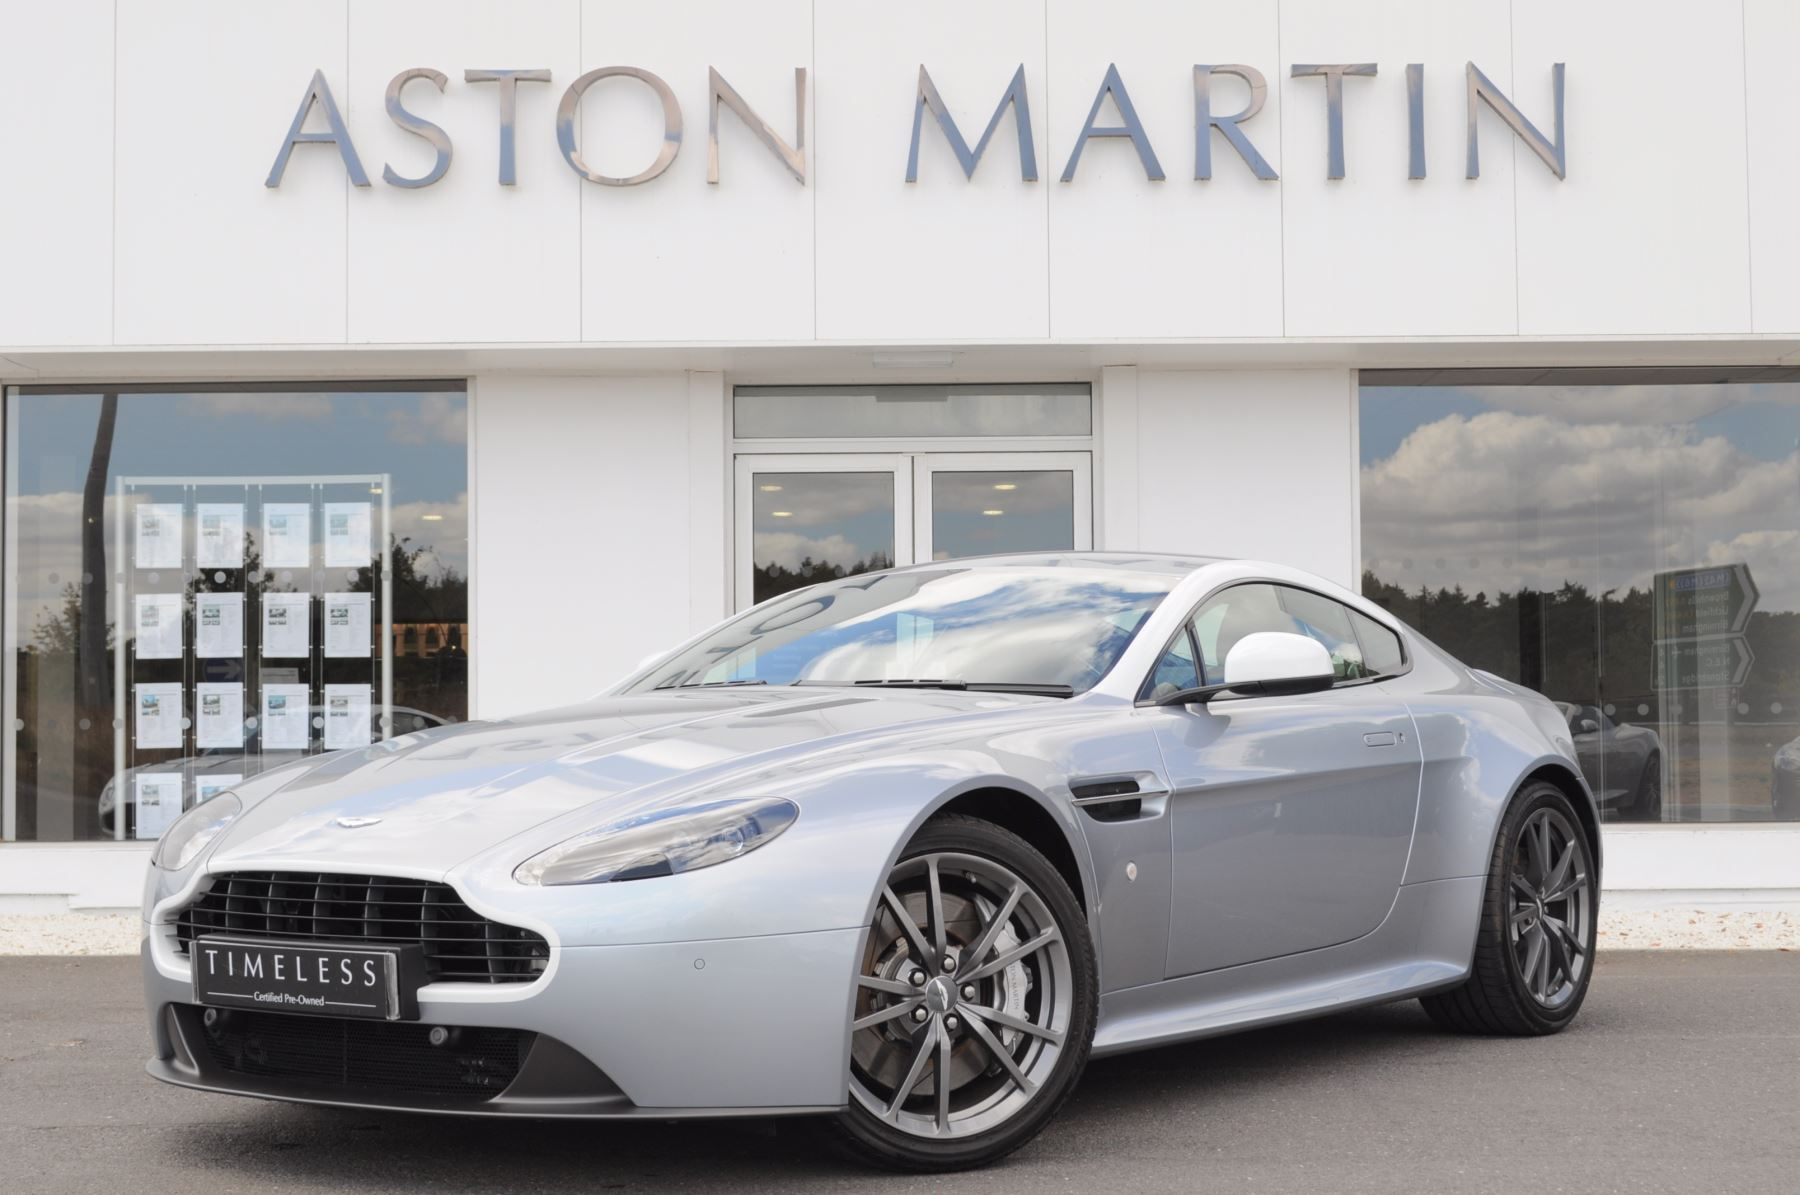 Aston Martin Vantage N430 2dr 4.7 3 door Coupe (2015)